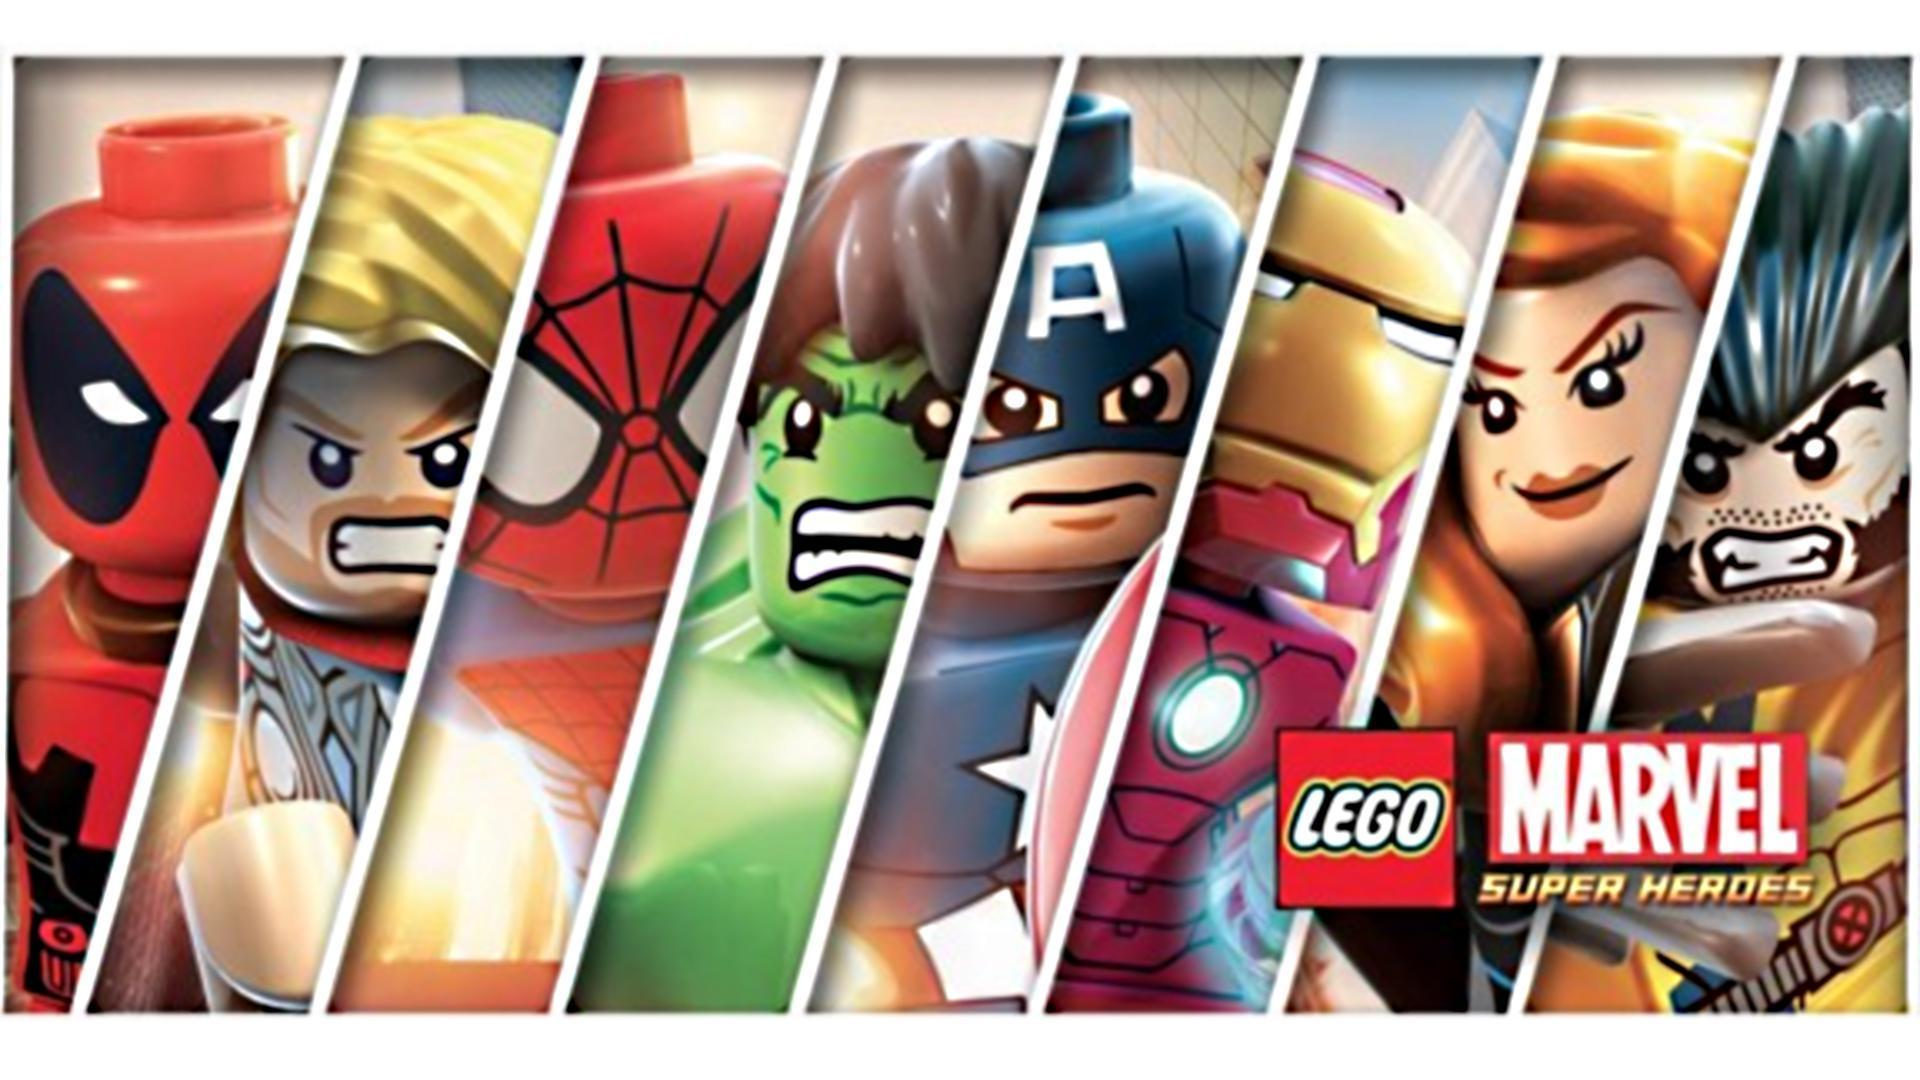 1920x1080 Lego Superheroes Wallpapers